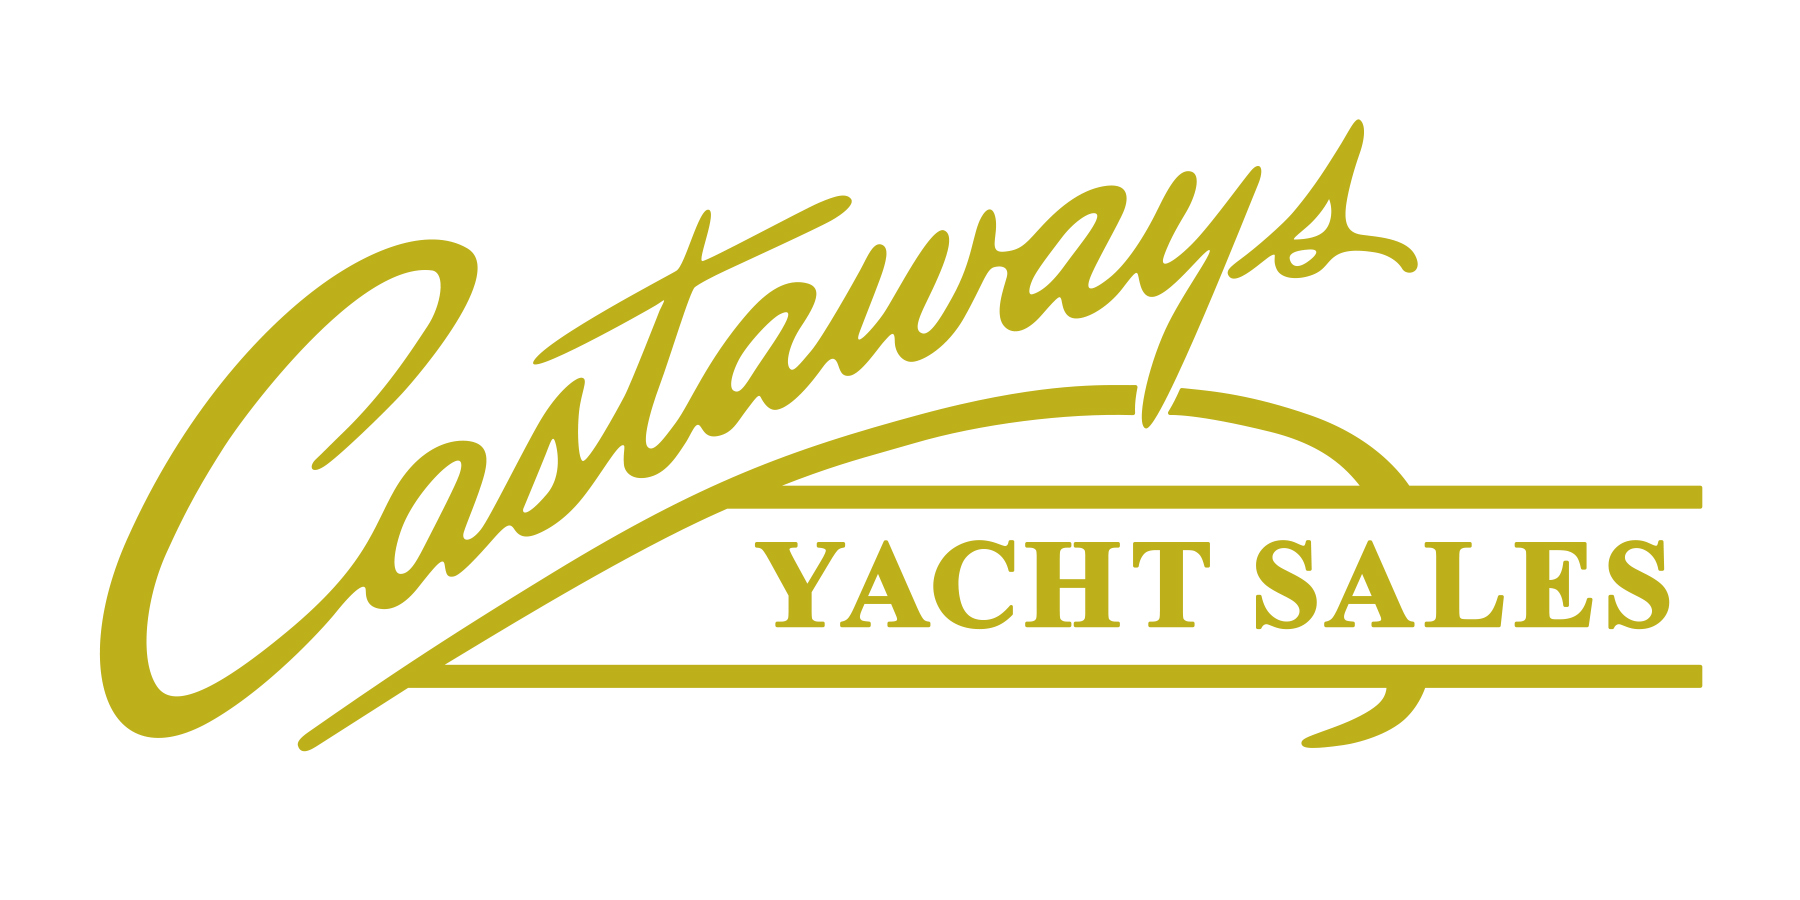 castaways yacht sales